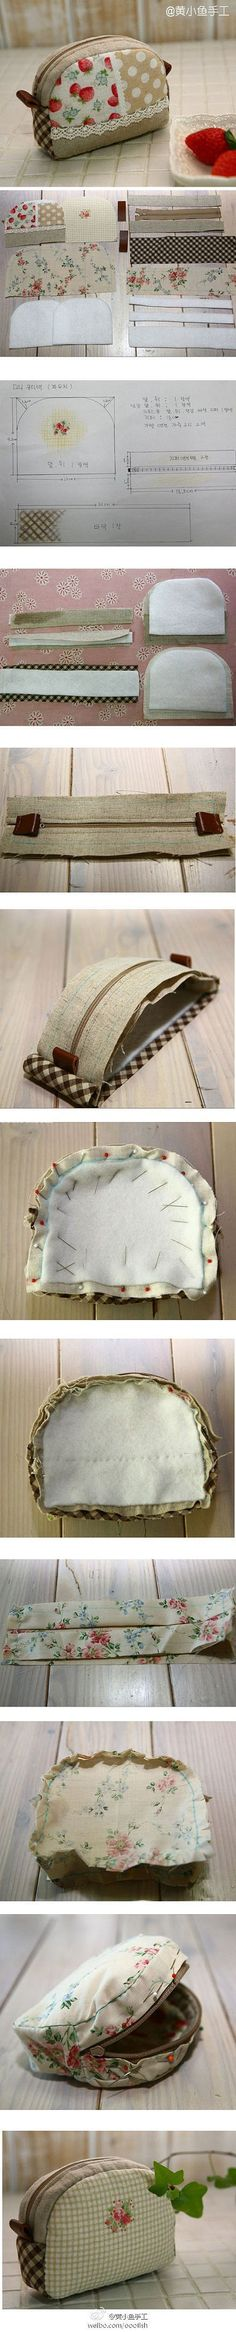 Pouch tutorial, sewing tutorial, makeup bag, sewing bag and lunch bag Sewing Hacks, Sewing Tutorials, Sewing Crafts, Sewing Projects, Sewing Patterns, Tutorial Sewing, Purse Patterns, Fabric Crafts, Diy Sac